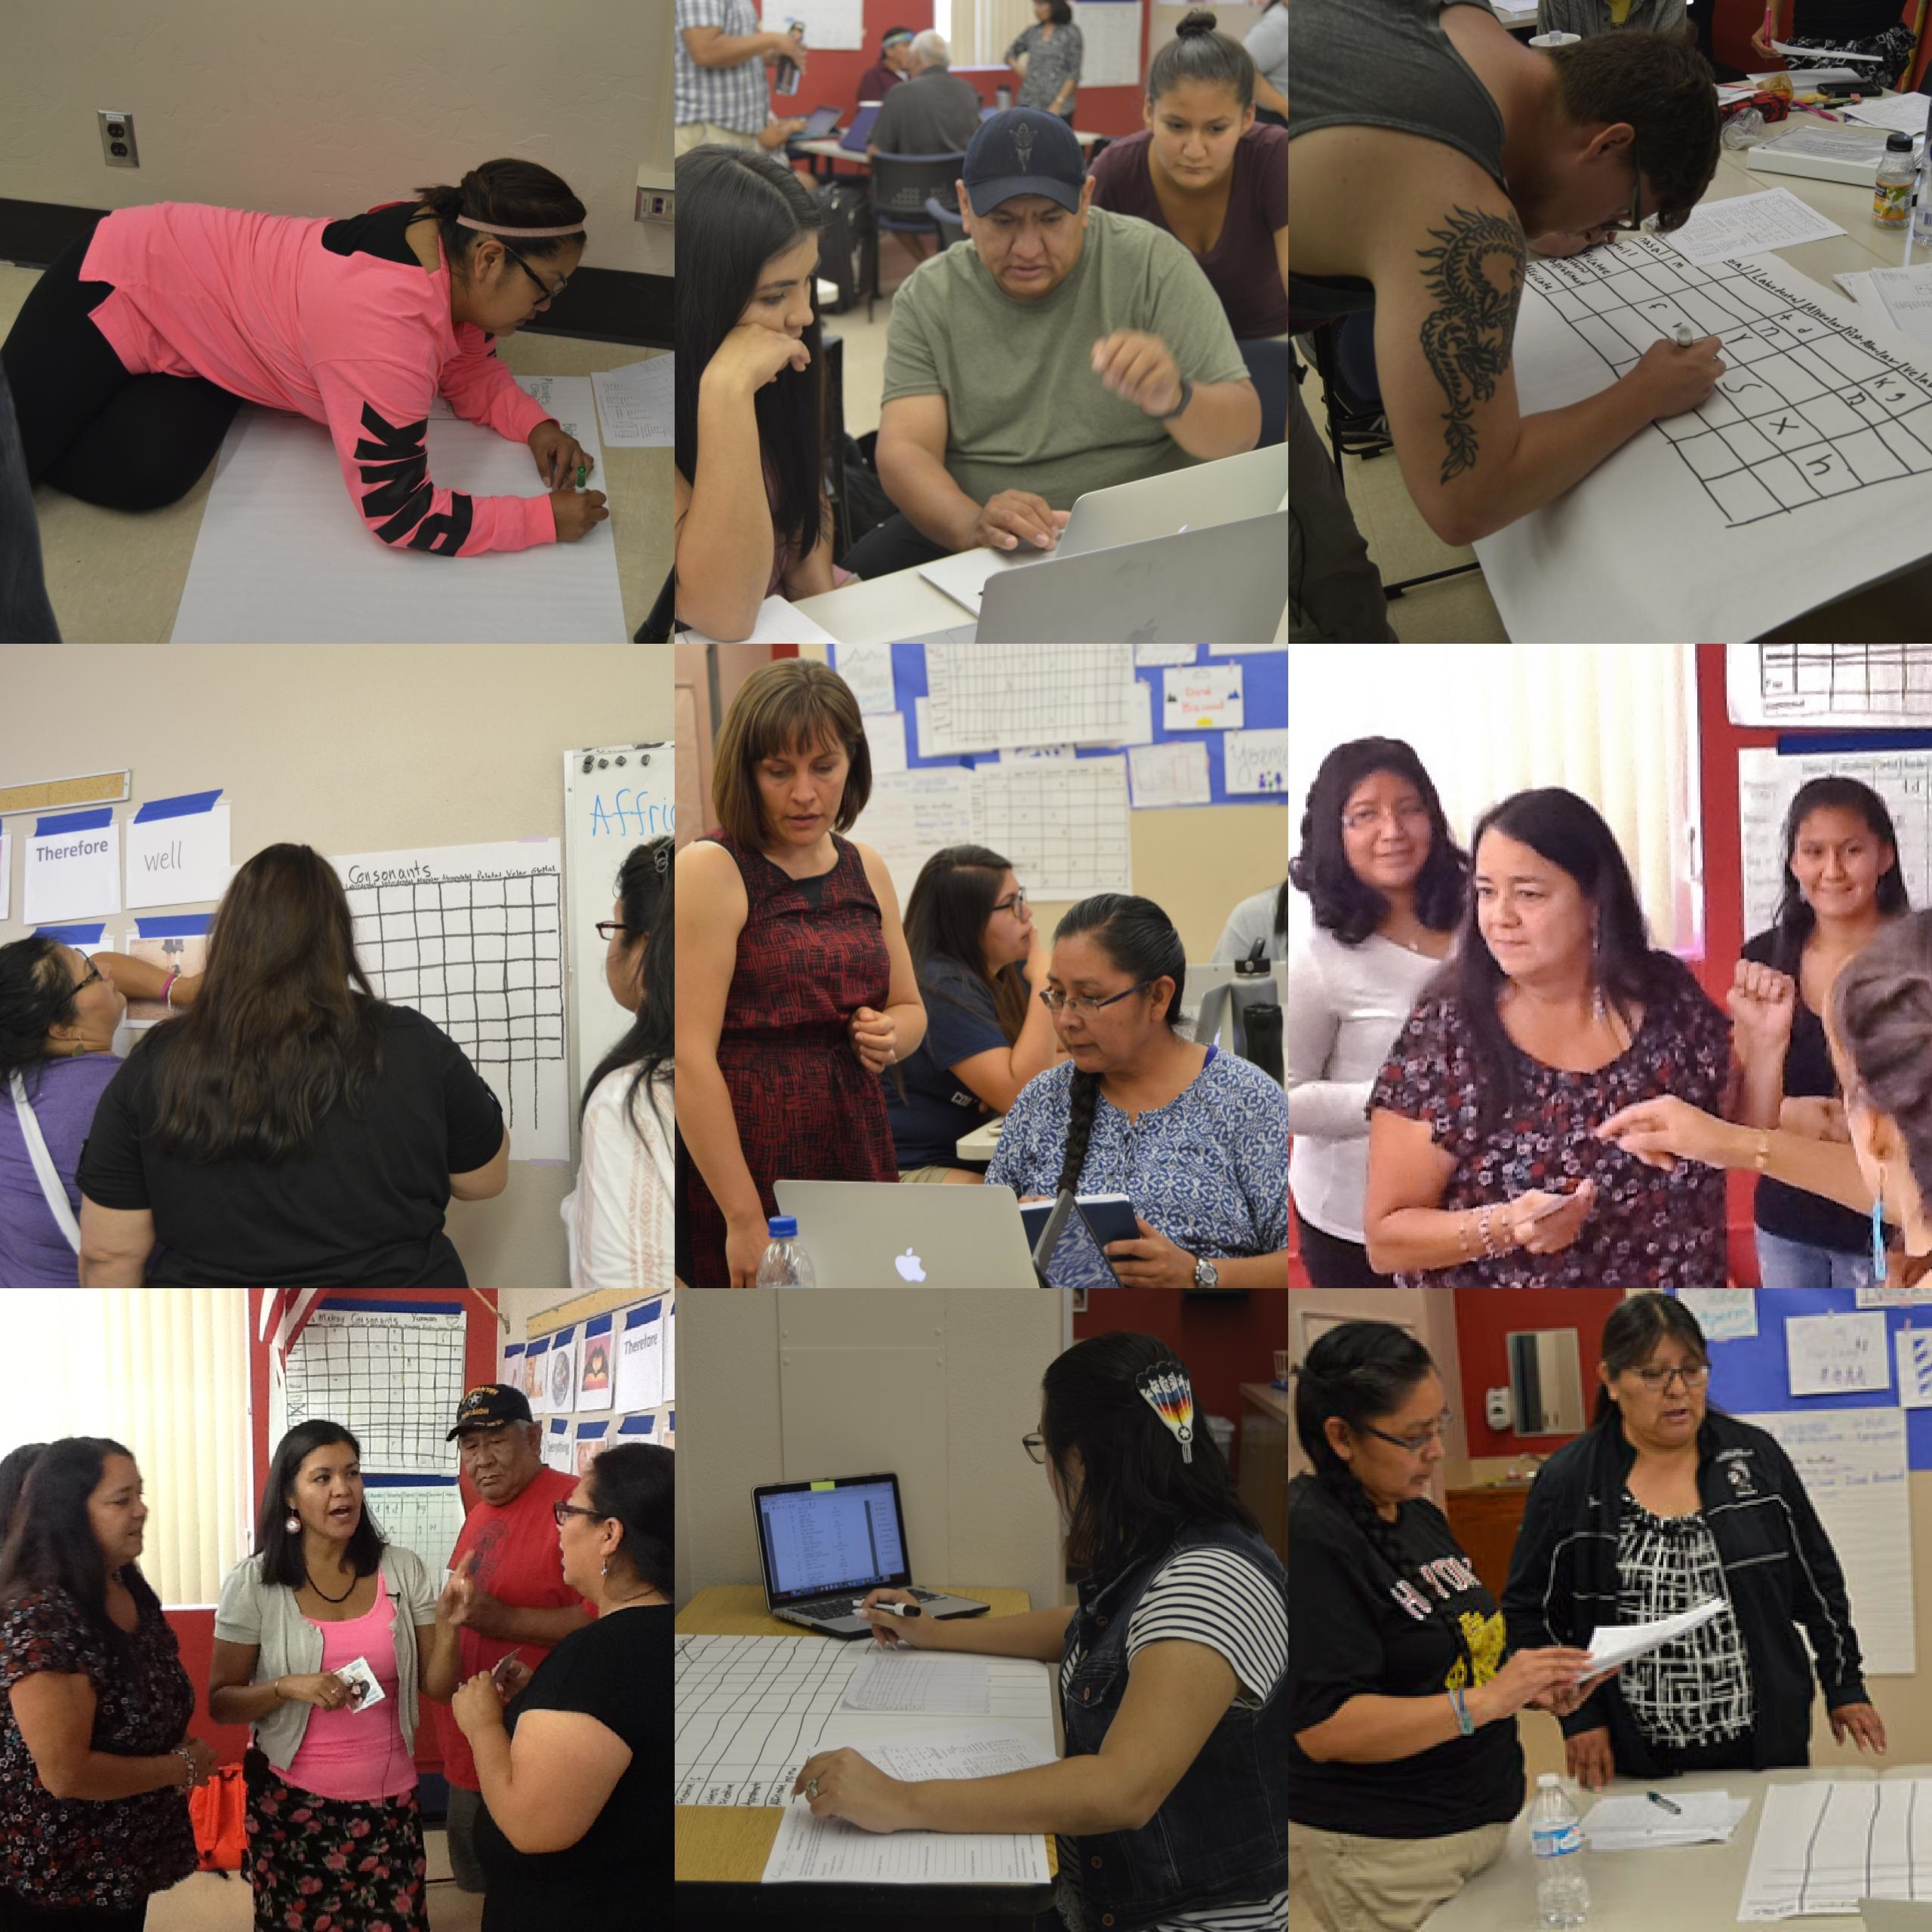 A compilation of images from the first summer session offered by AILDI